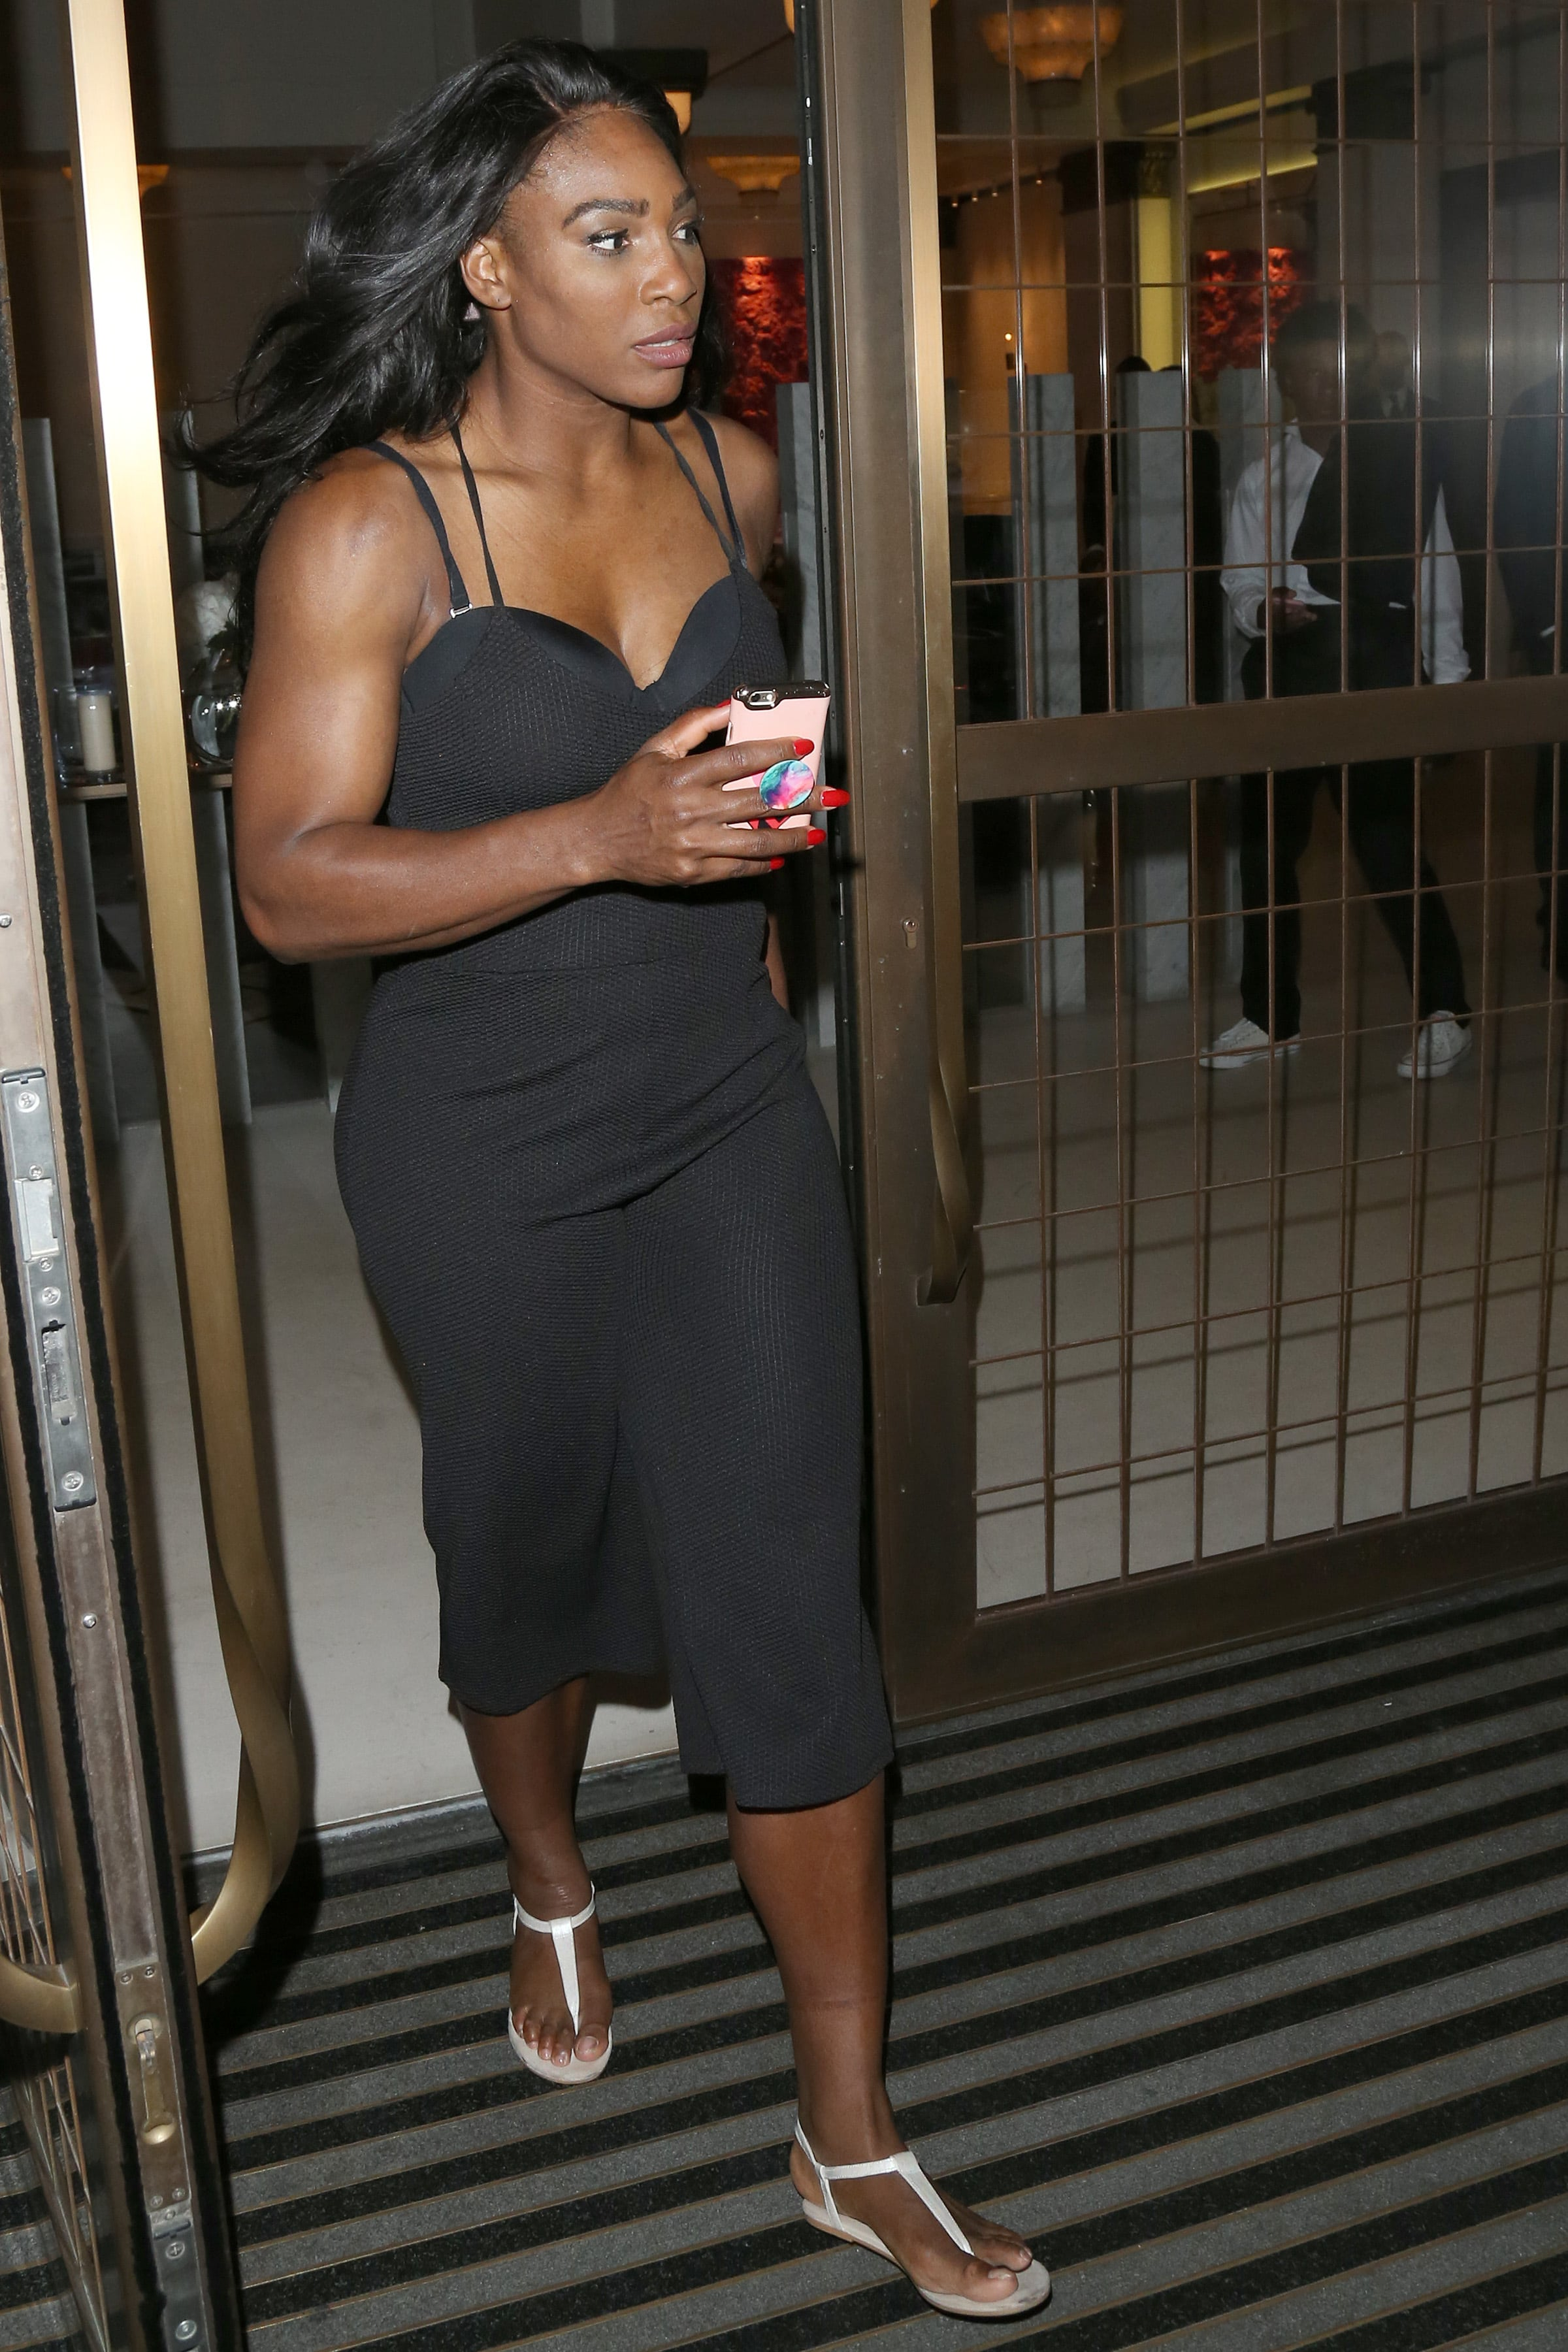 serena williams hot feet